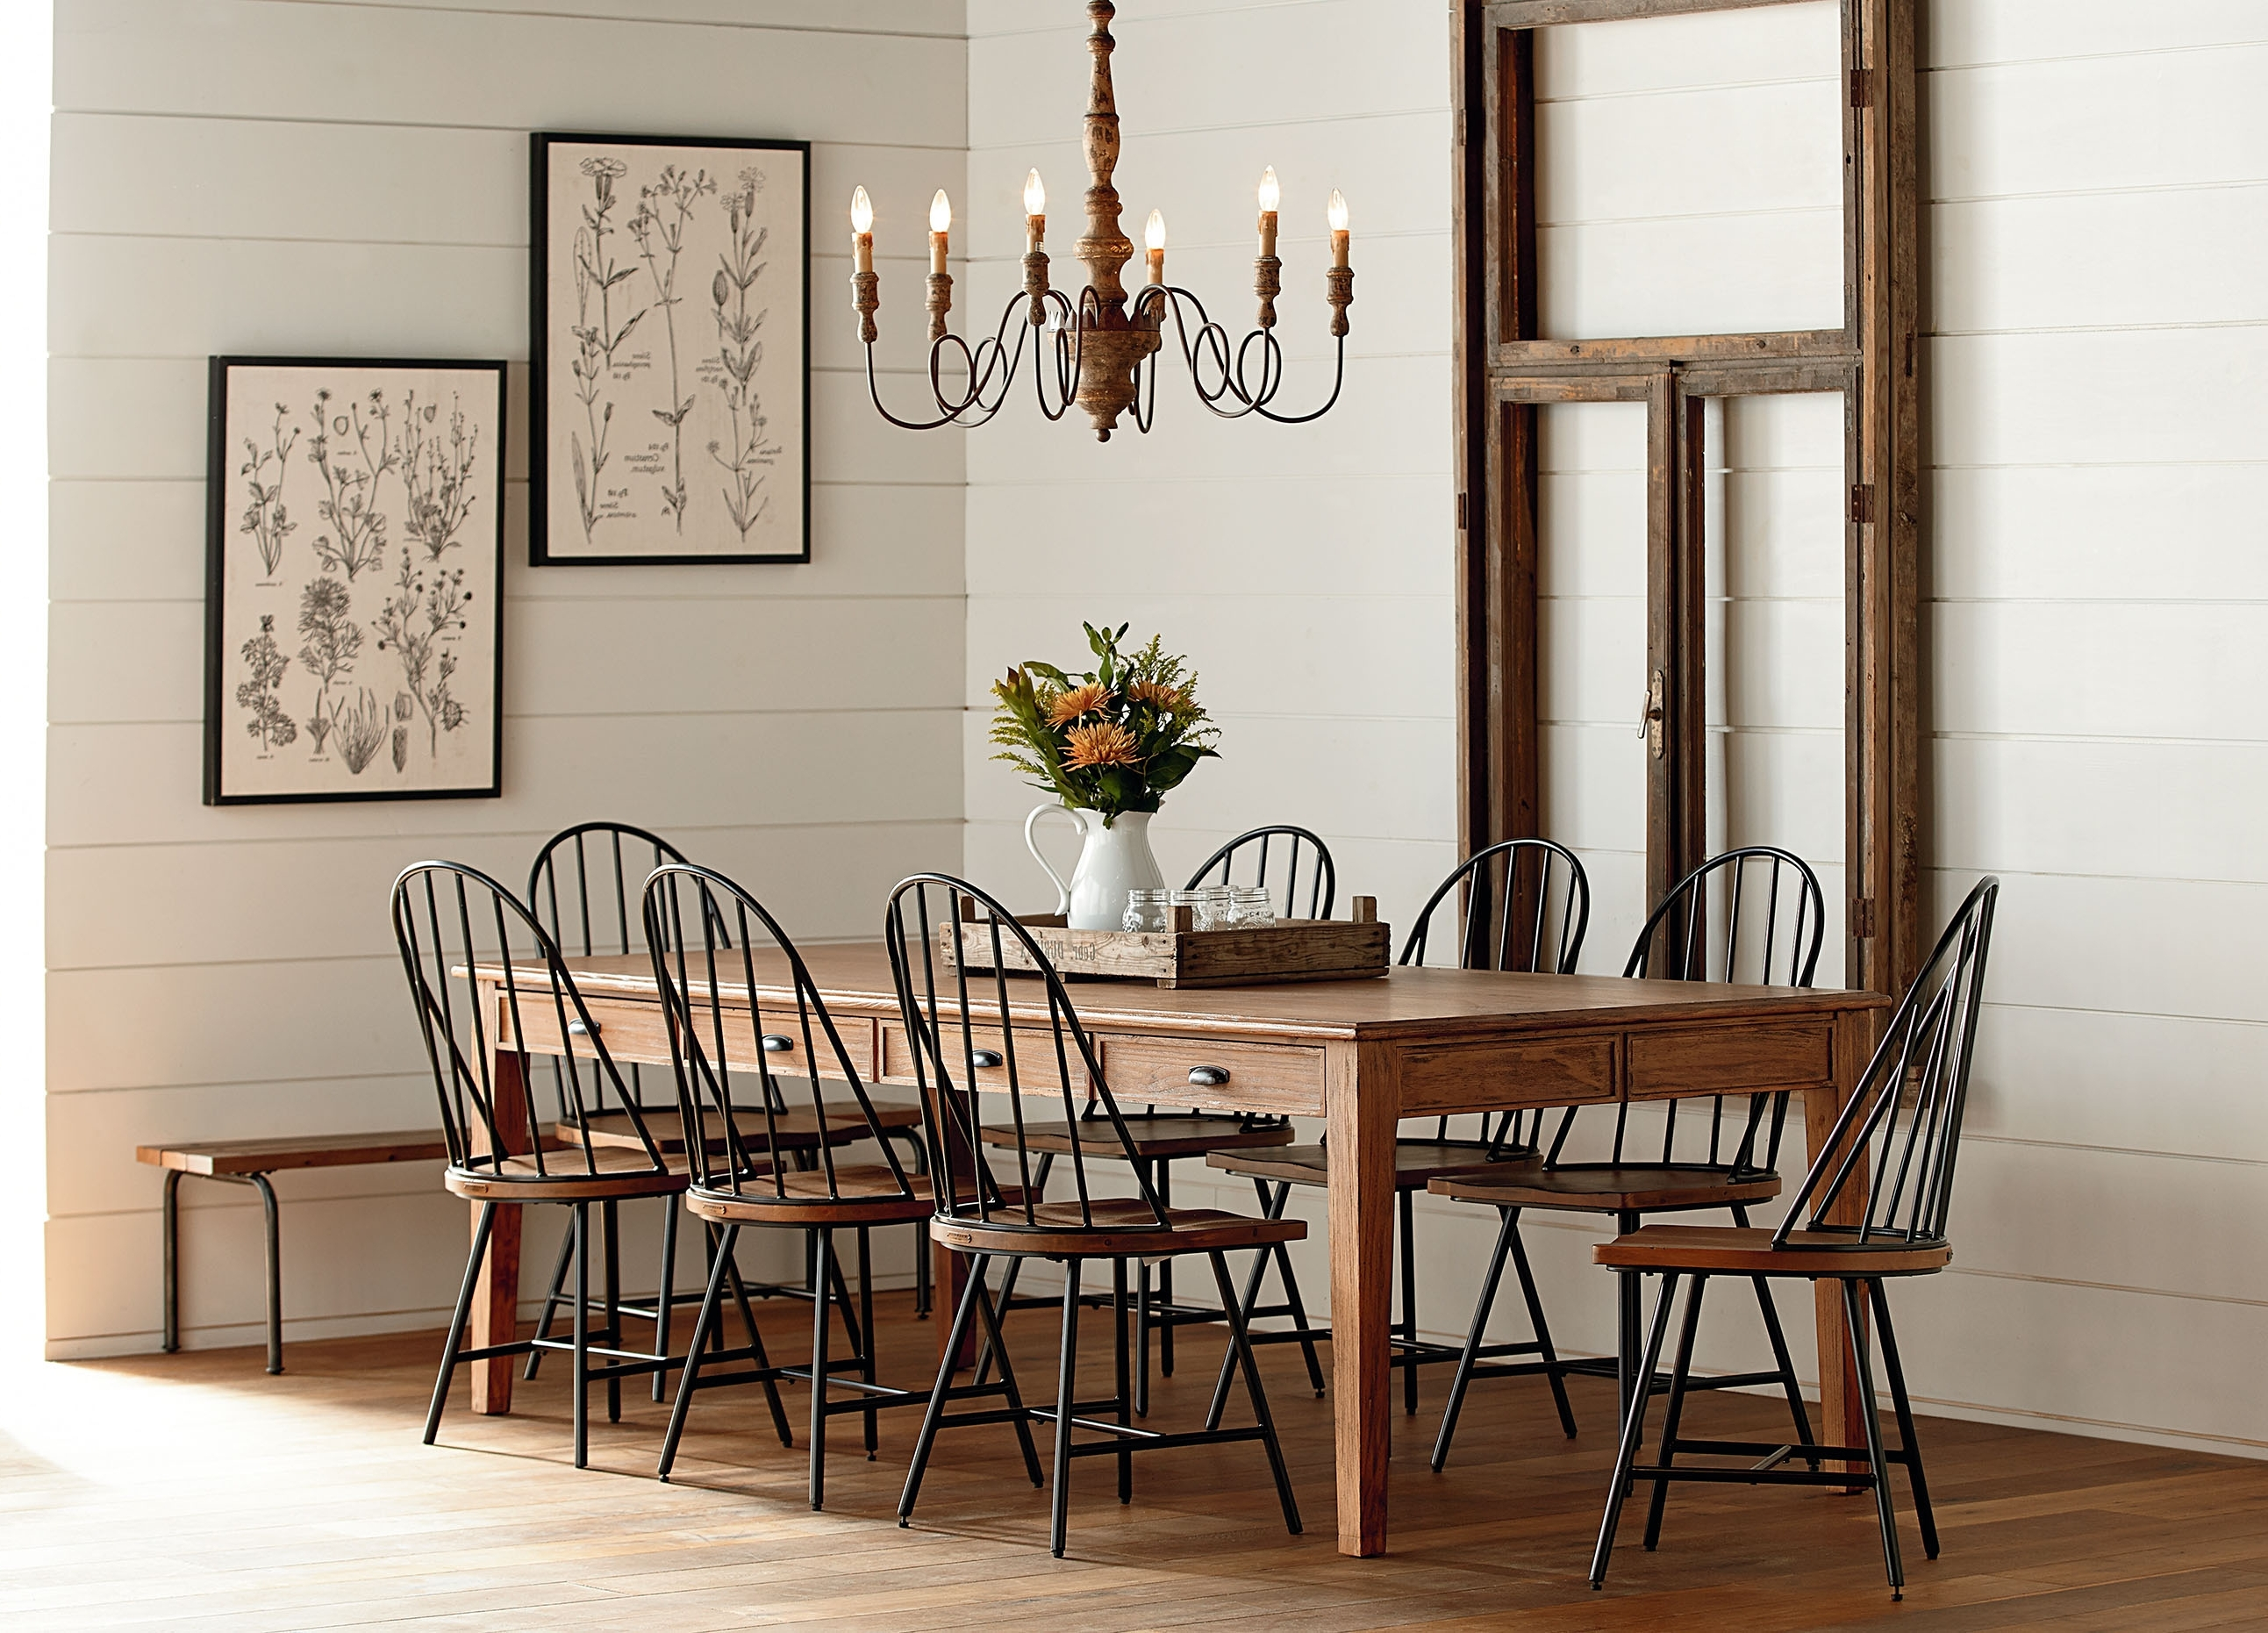 Recent Keeping Dining Table – Magnolia Home With Magnolia Home Keeping Dining Tables (View 18 of 25)